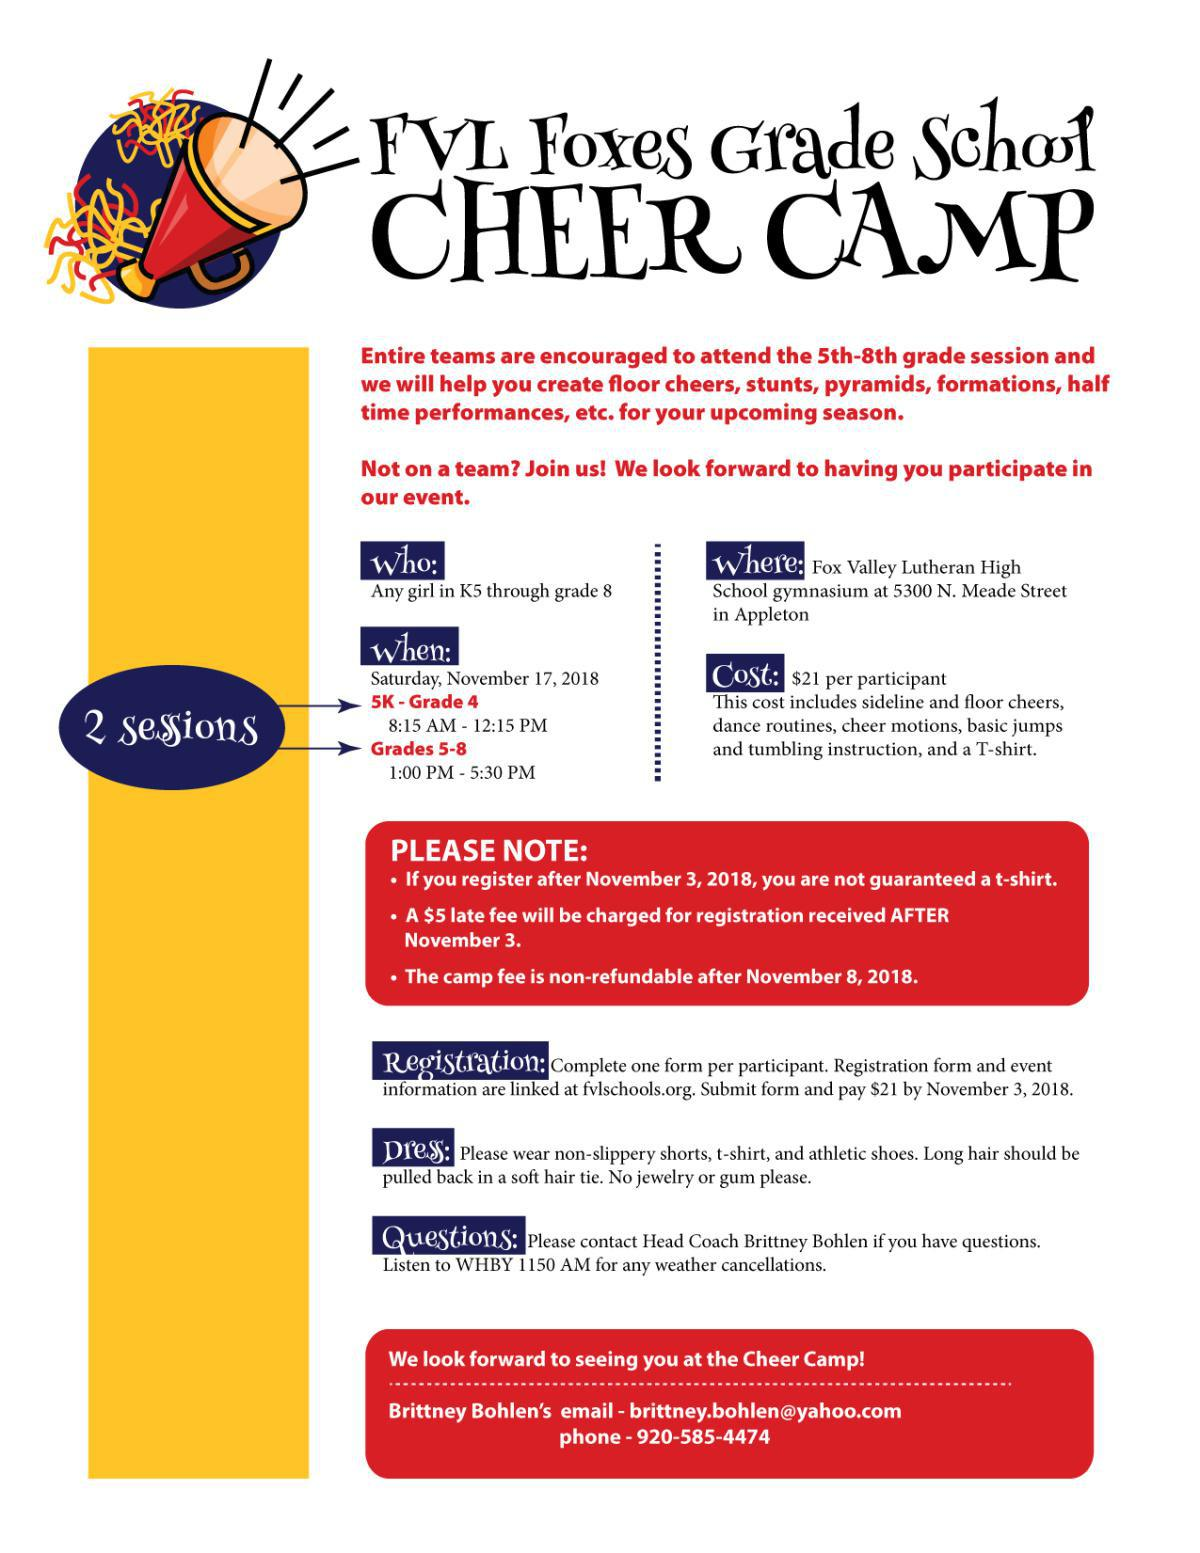 Registration OPEN for Grade School Cheer Camp